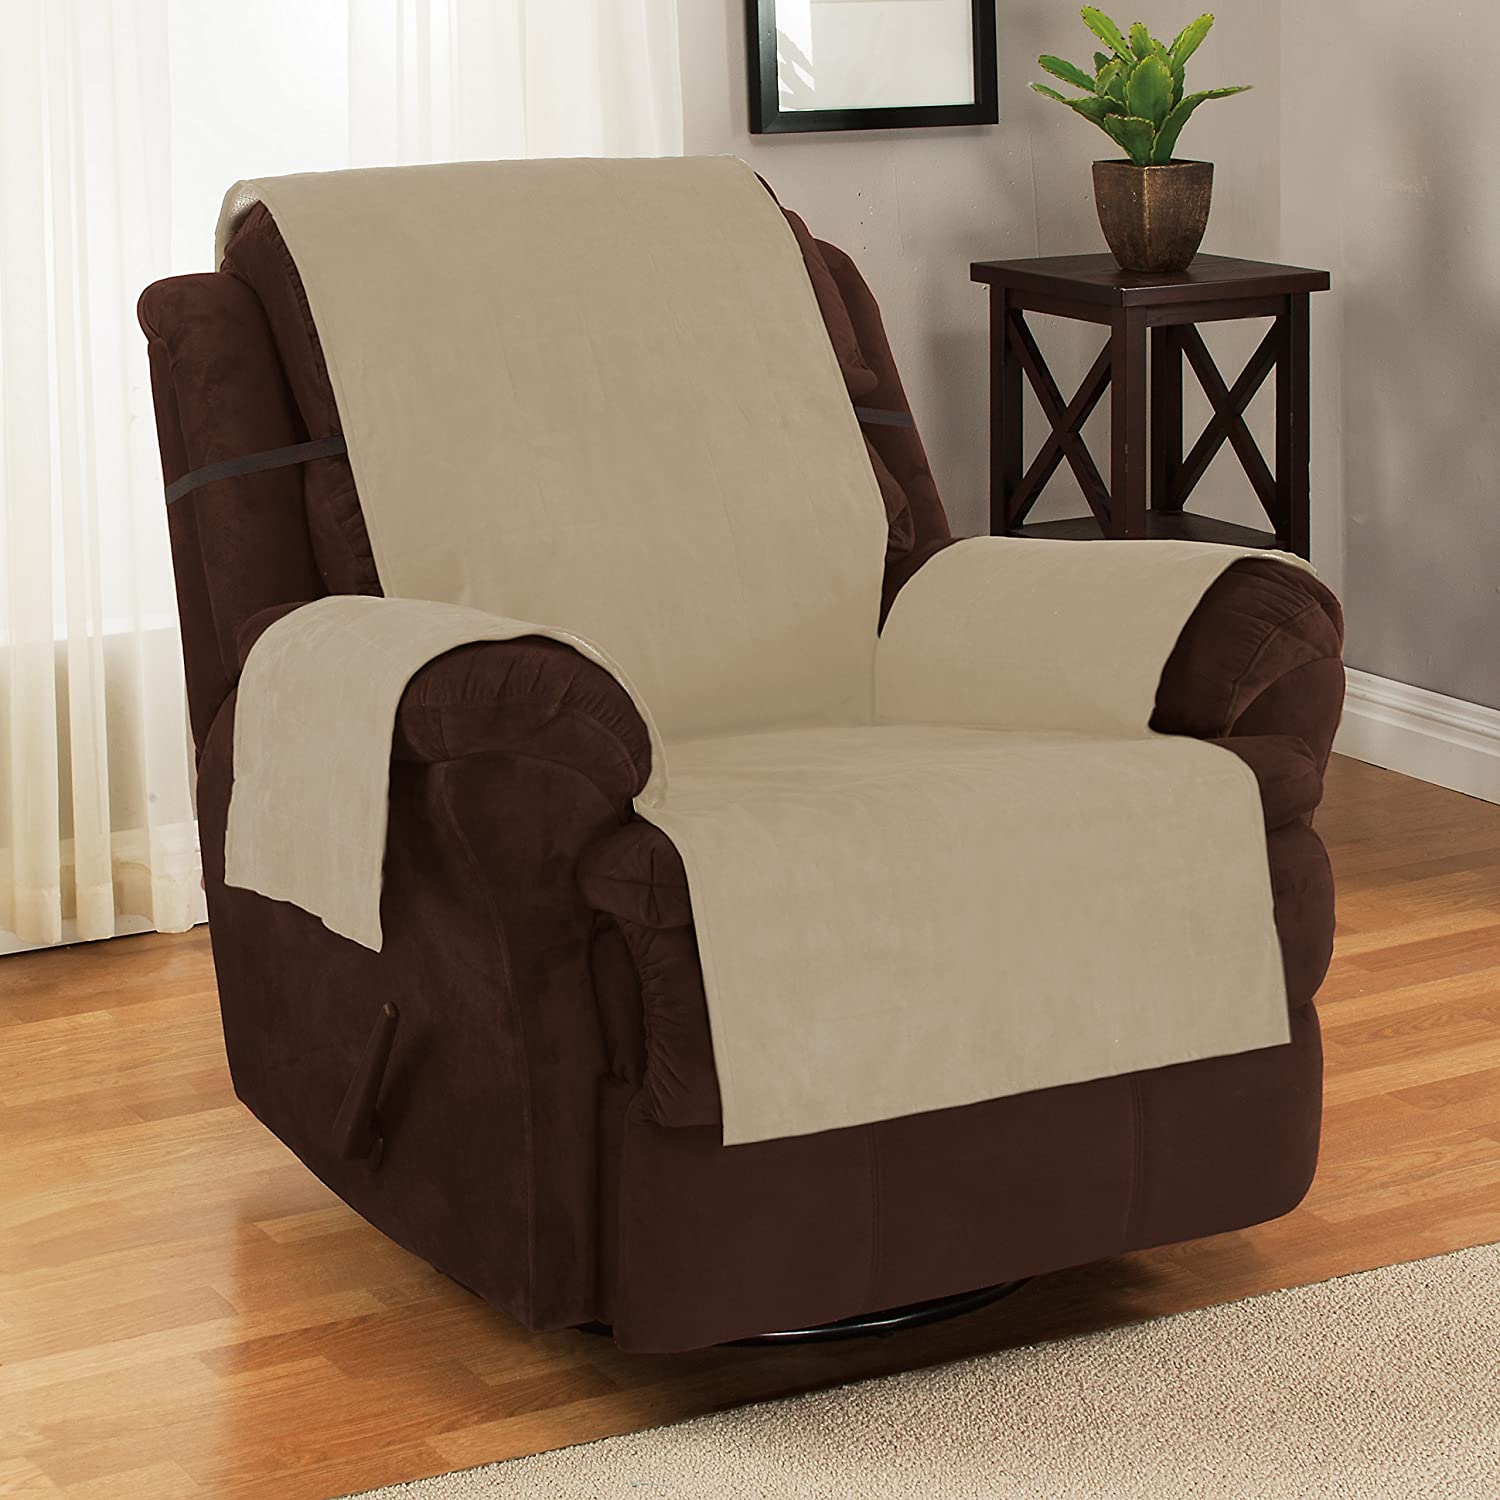 slipcover recliner p dawson great twill cream fit collection form home bay slipcovers